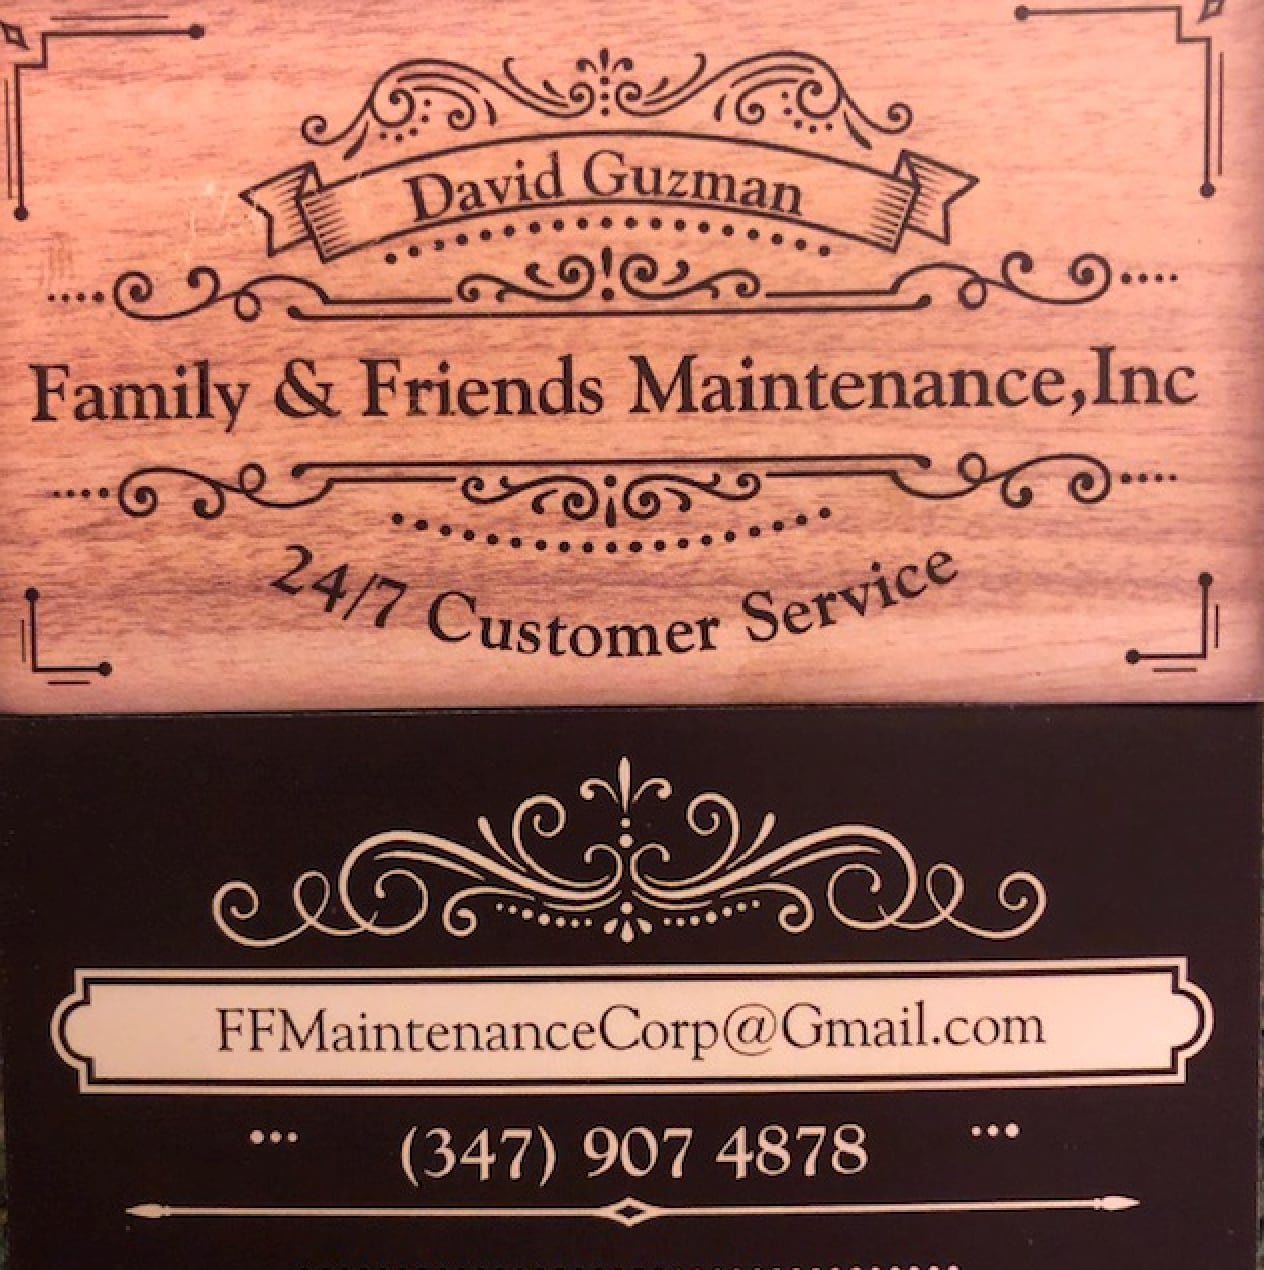 Family & Friends Maintenance, Inc